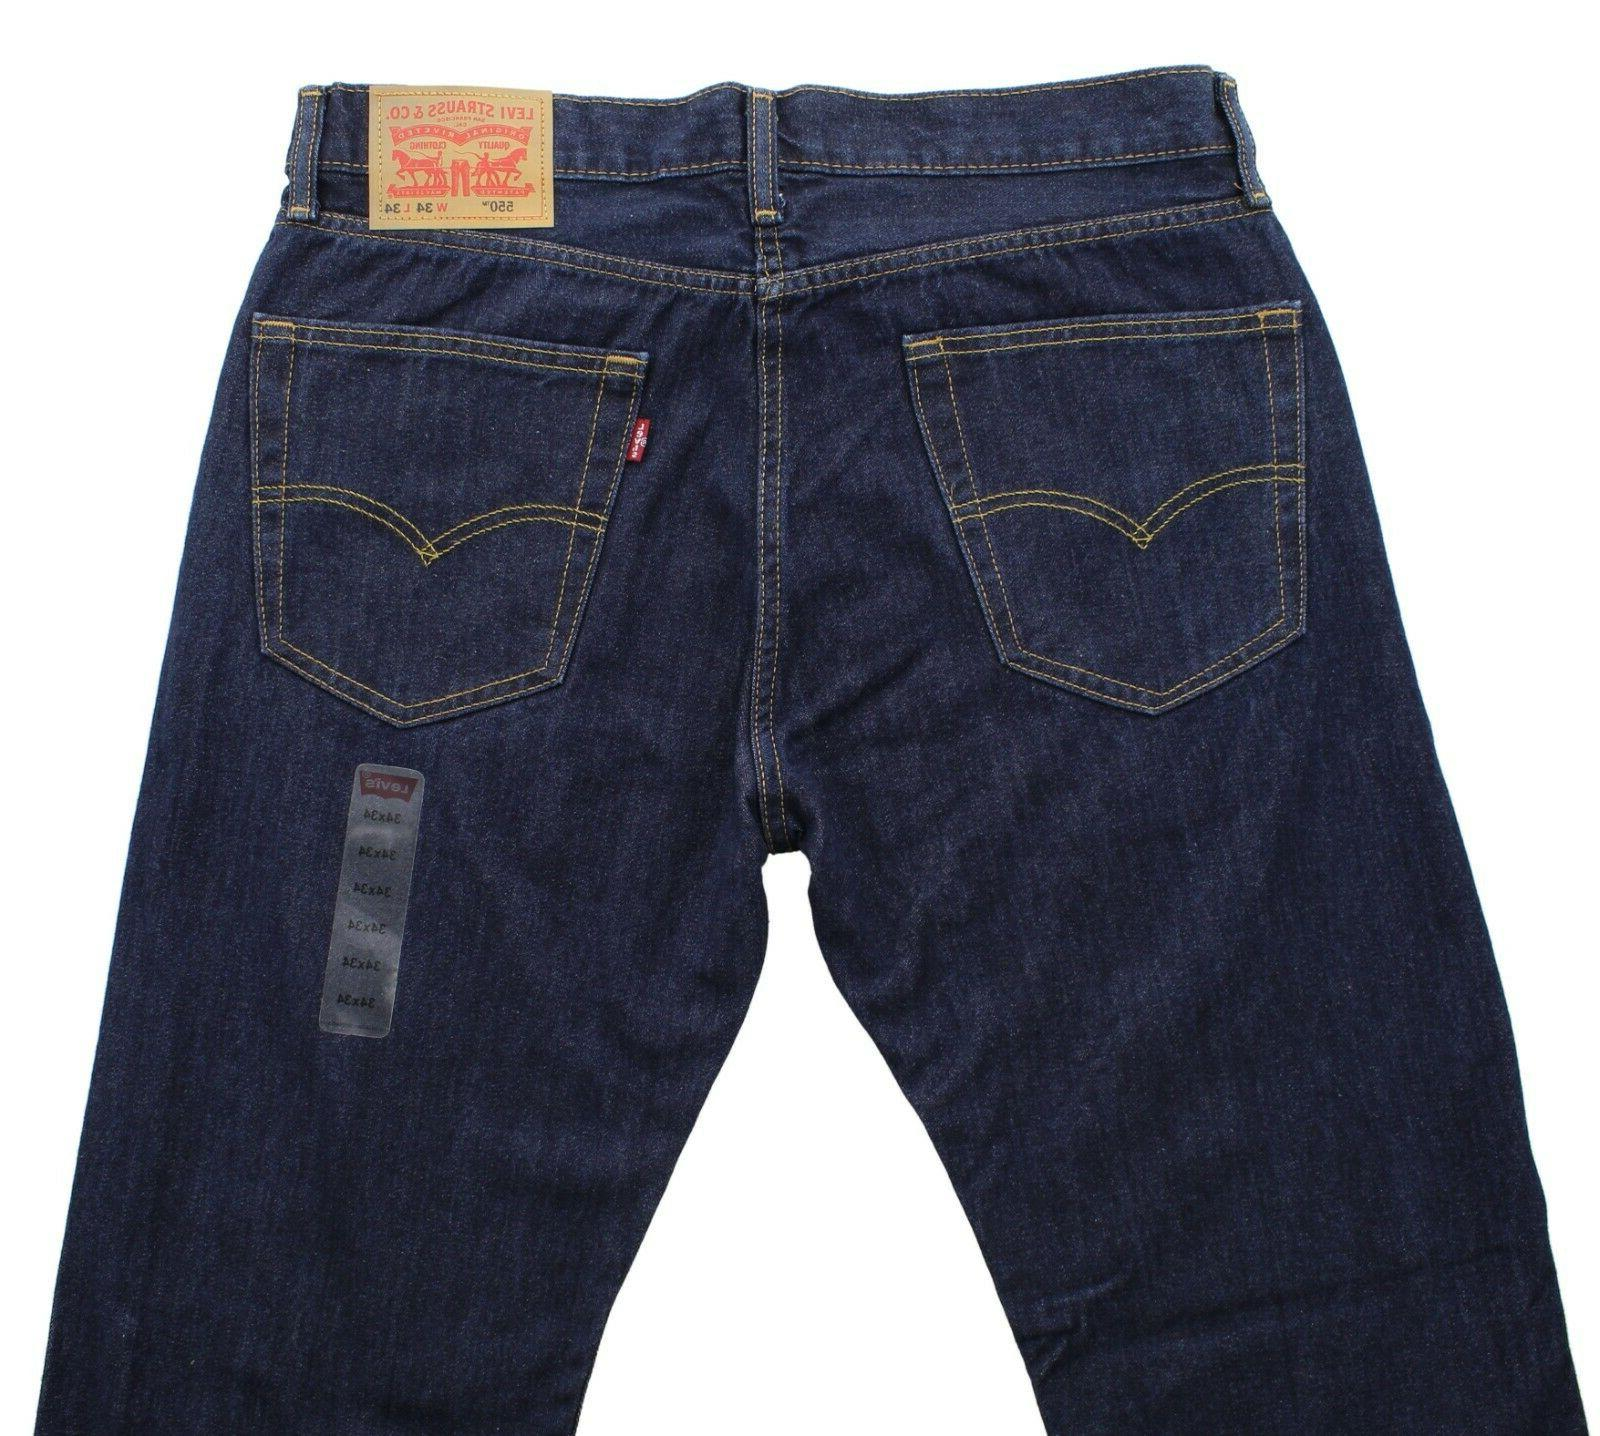 Levi's Jeans Straight Relaxed Fit